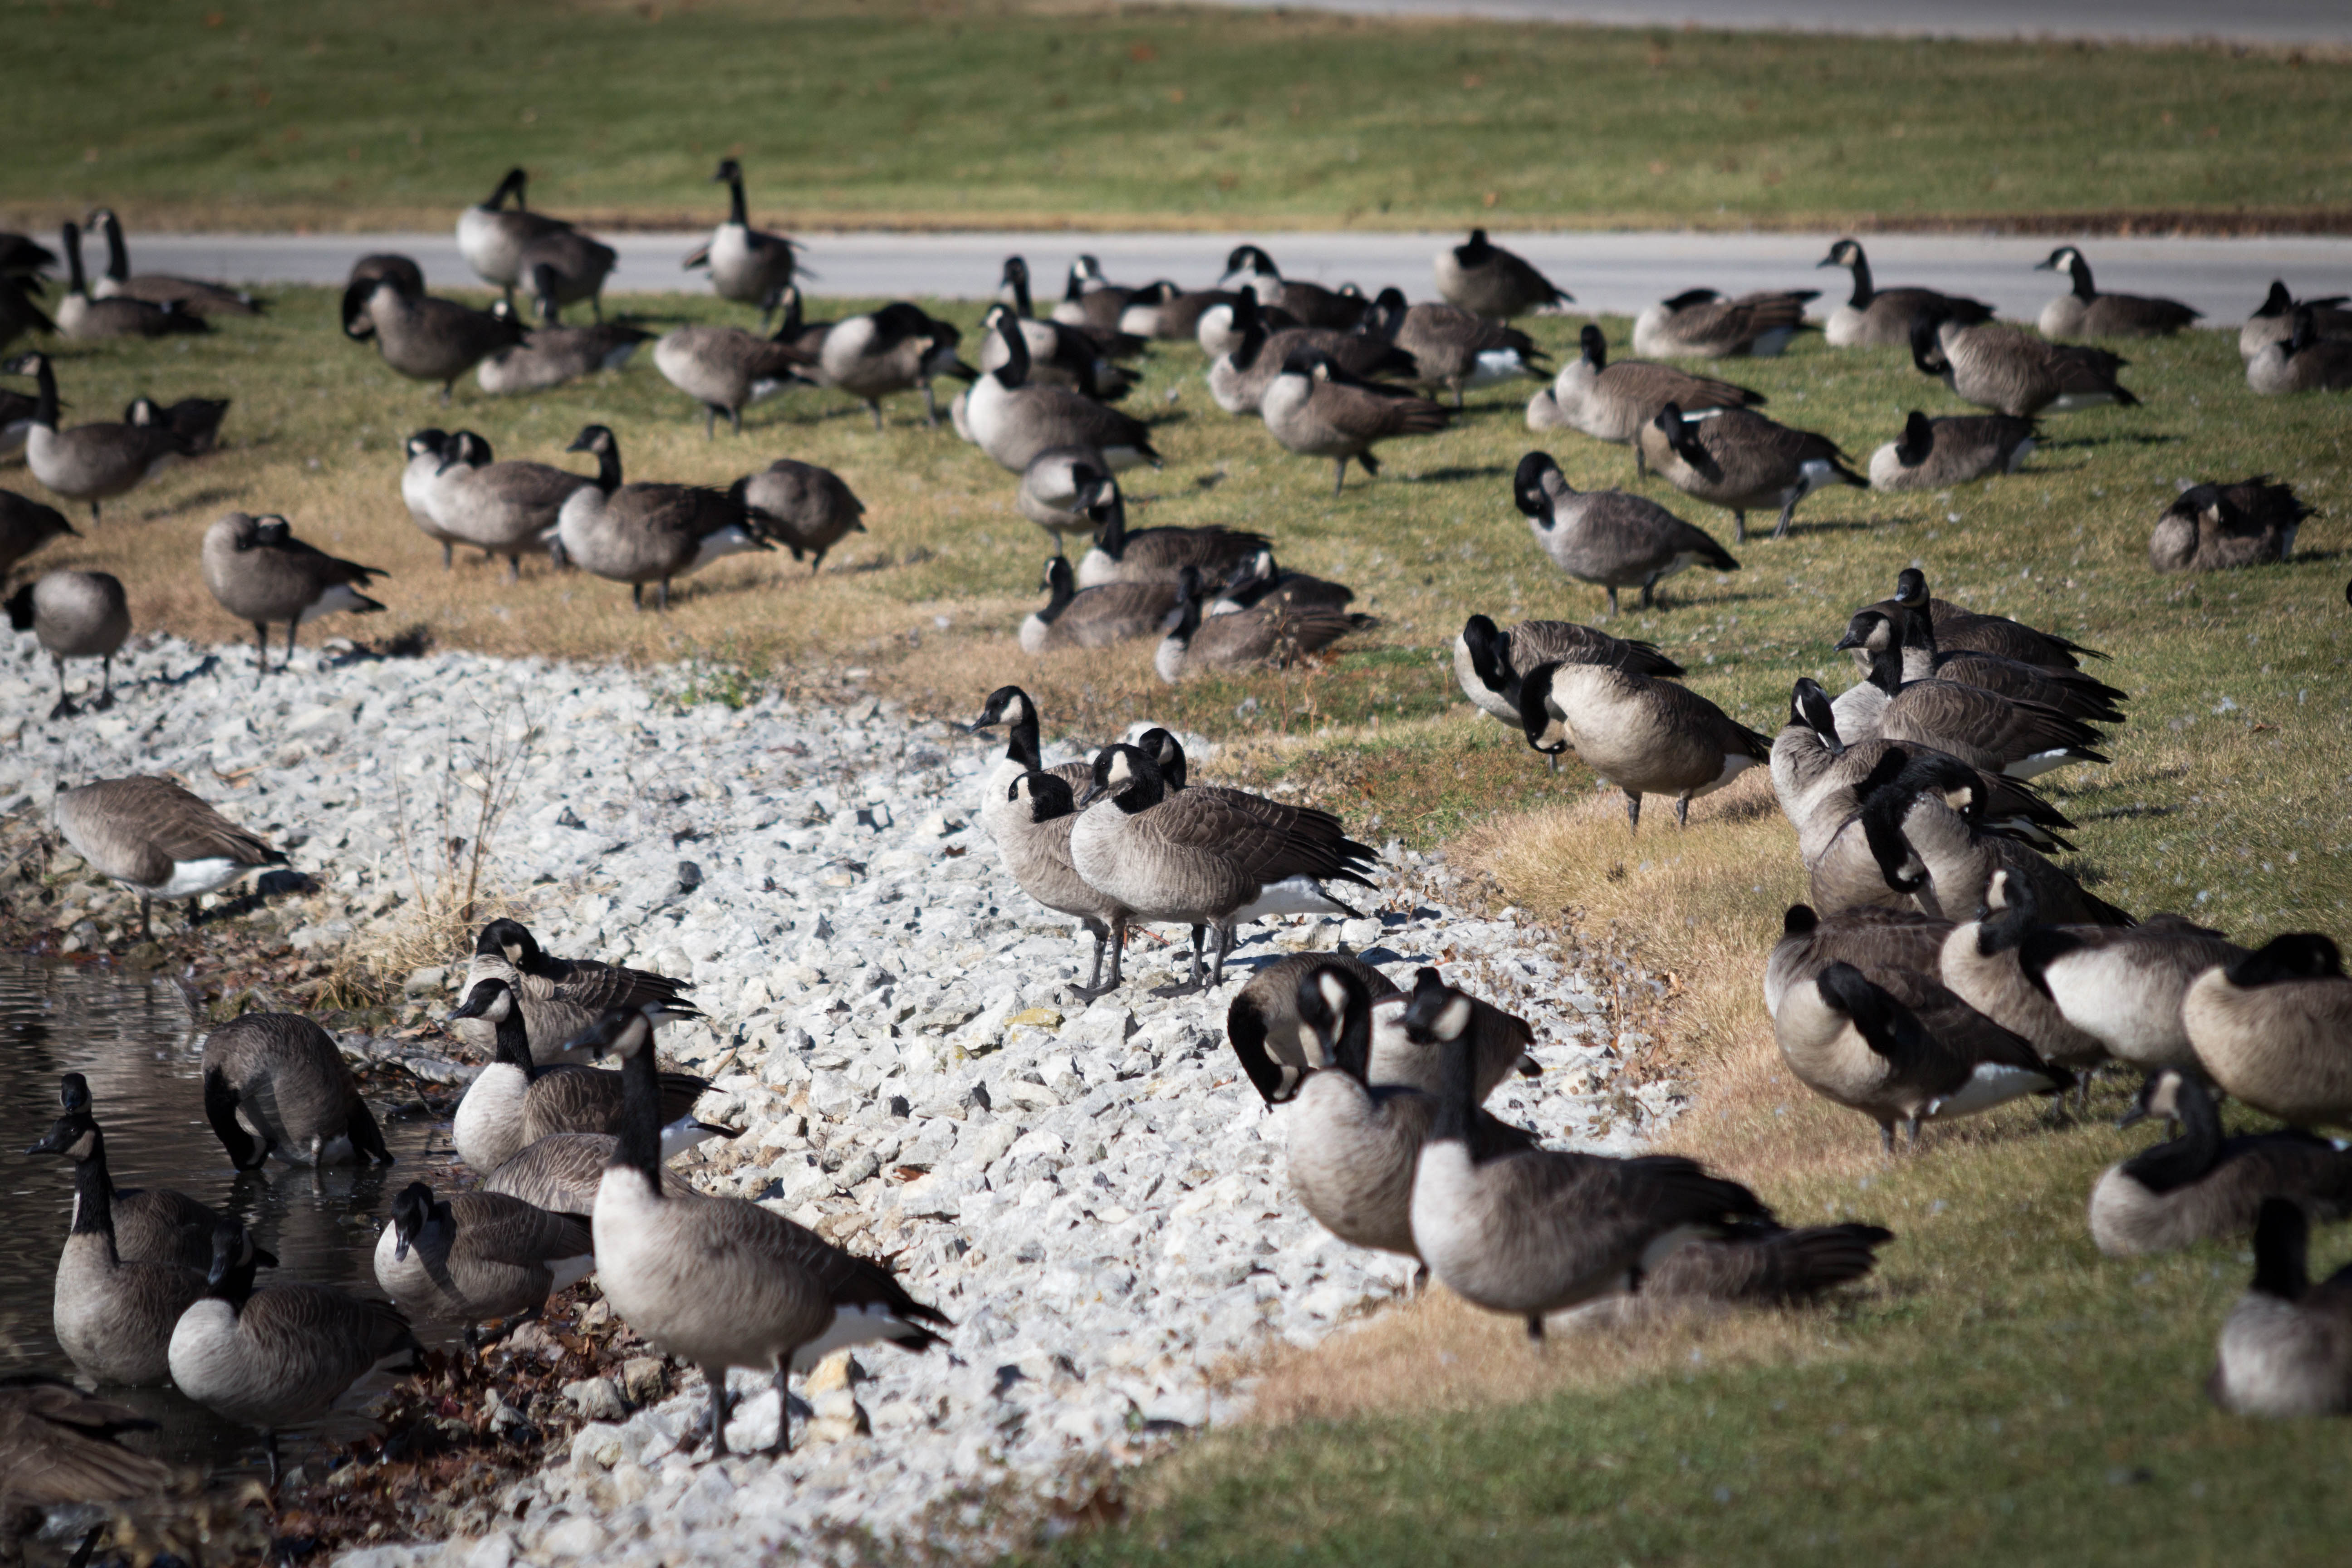 Large gaggles of geese have been recently sighted resting on the shore of Swan Lake. Photo: Jesus Orduna, Brown University